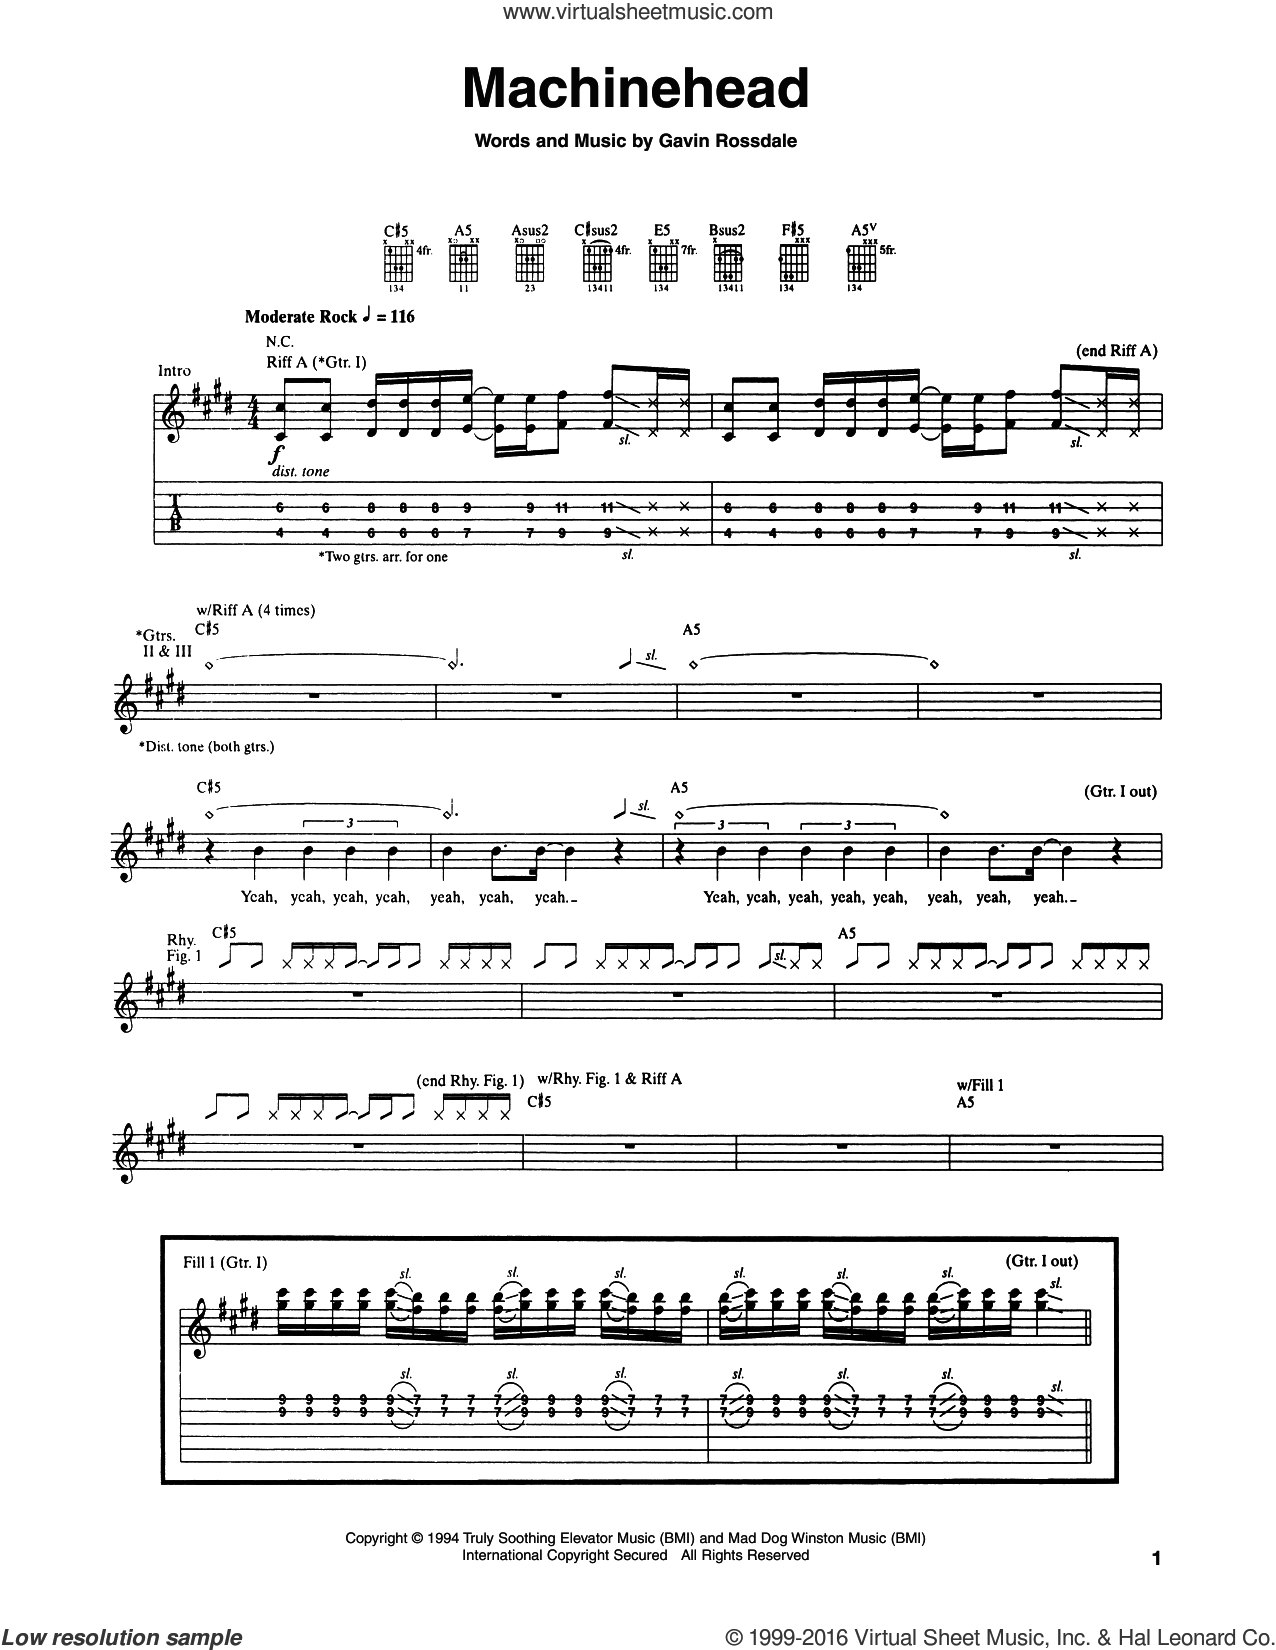 Machinehead sheet music for guitar (tablature) by Gavin Rossdale